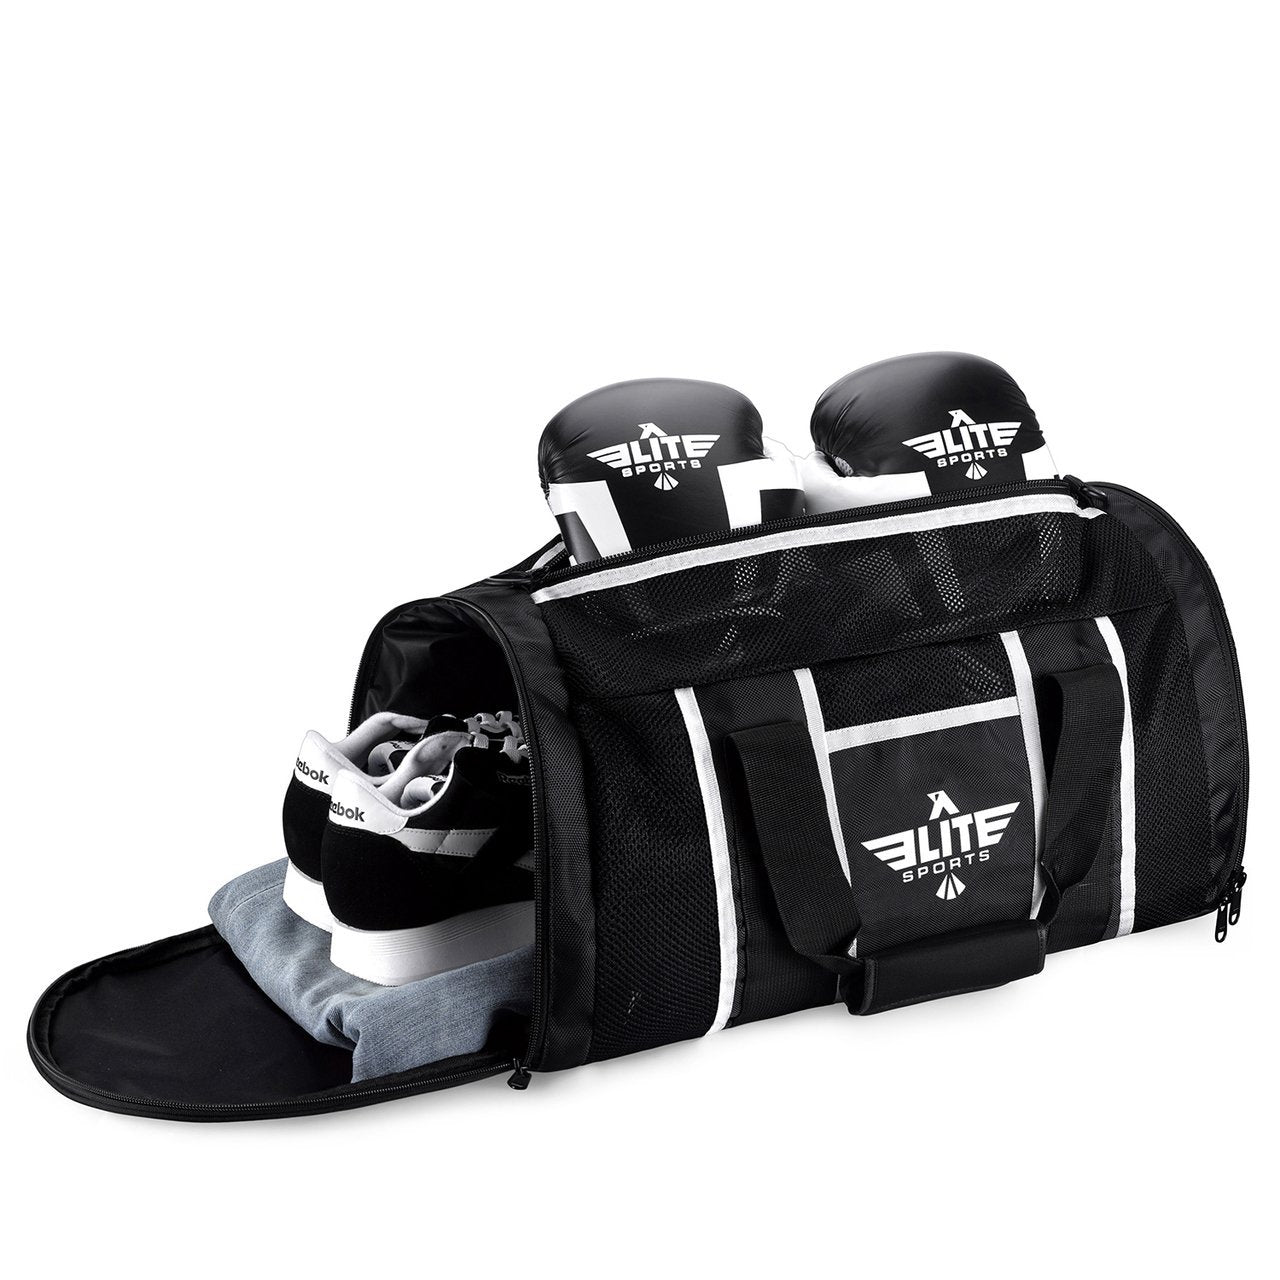 Load image into Gallery viewer, Elite Sports Mesh Black Large Boxing Gear Gym Bag